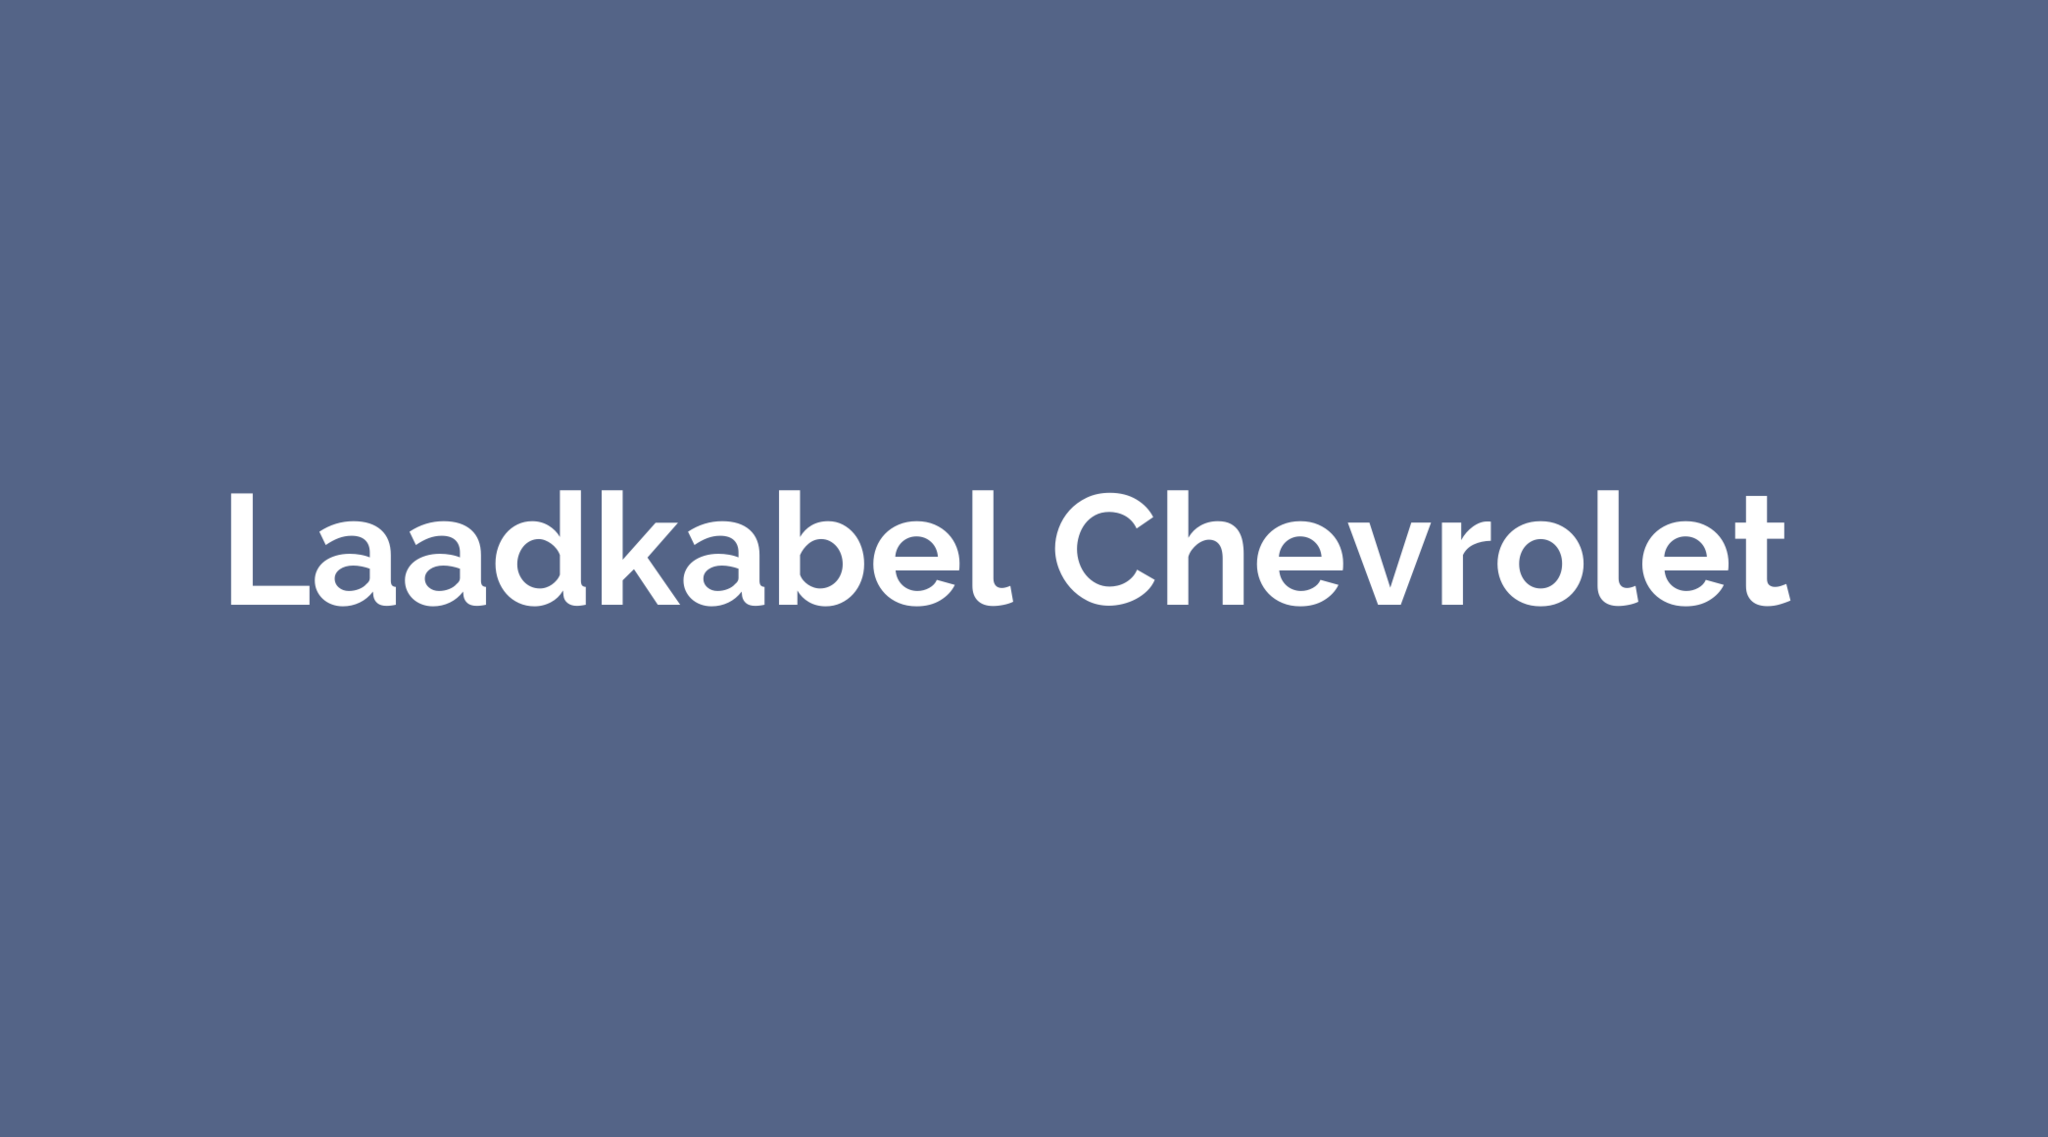 Laadkabel Chevrolet